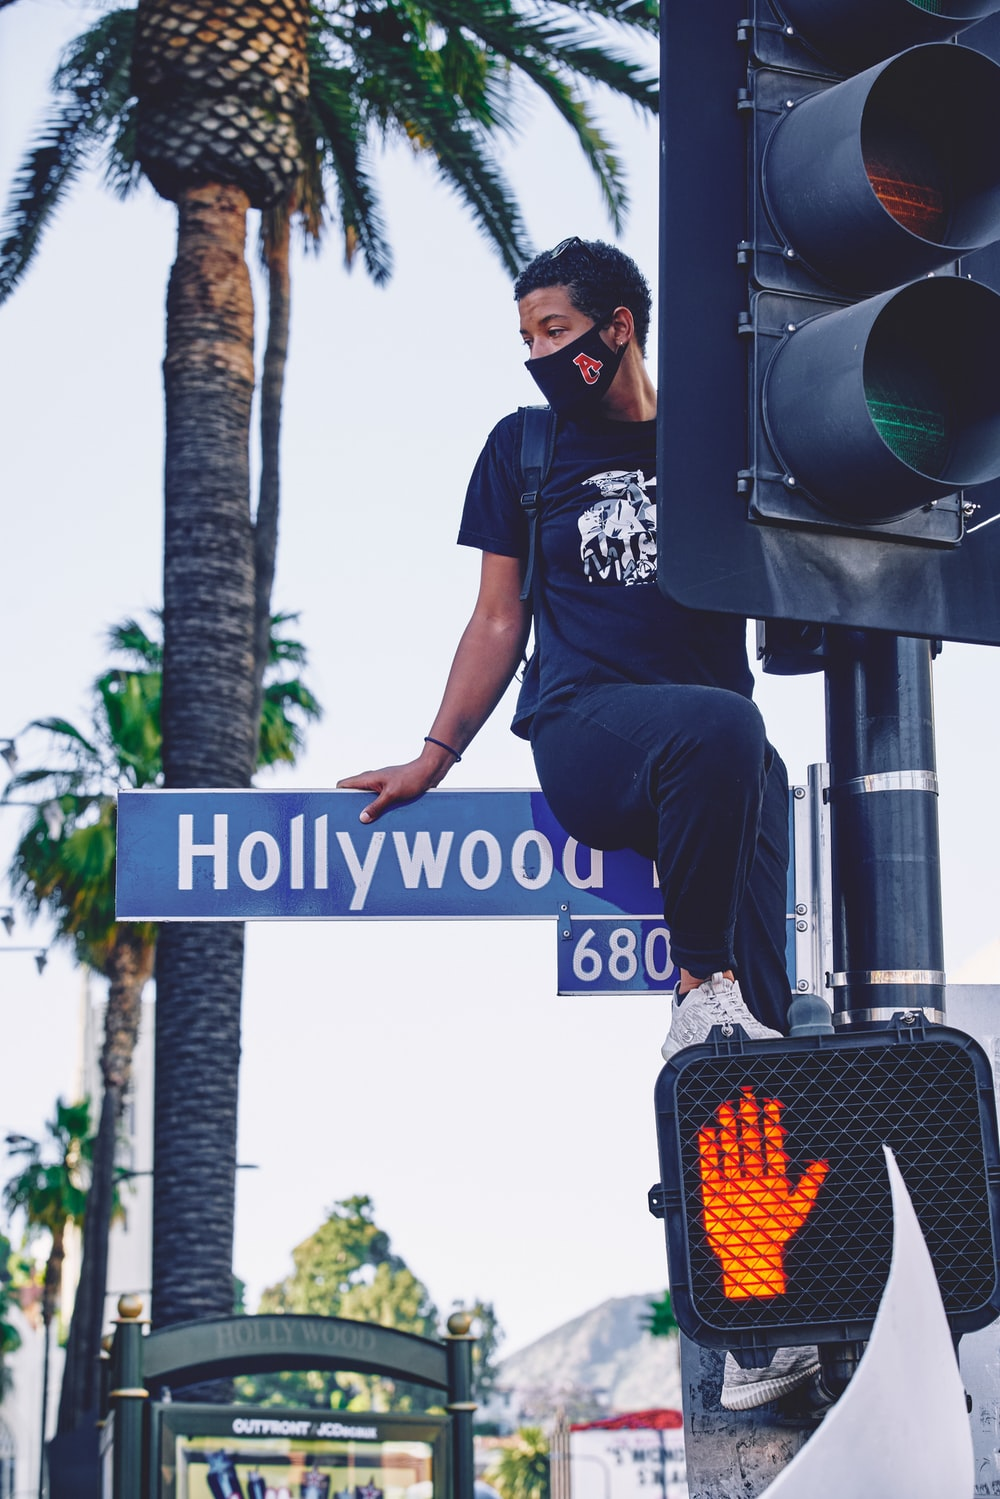 man in black t-shirt and black pants standing on black and white street light during